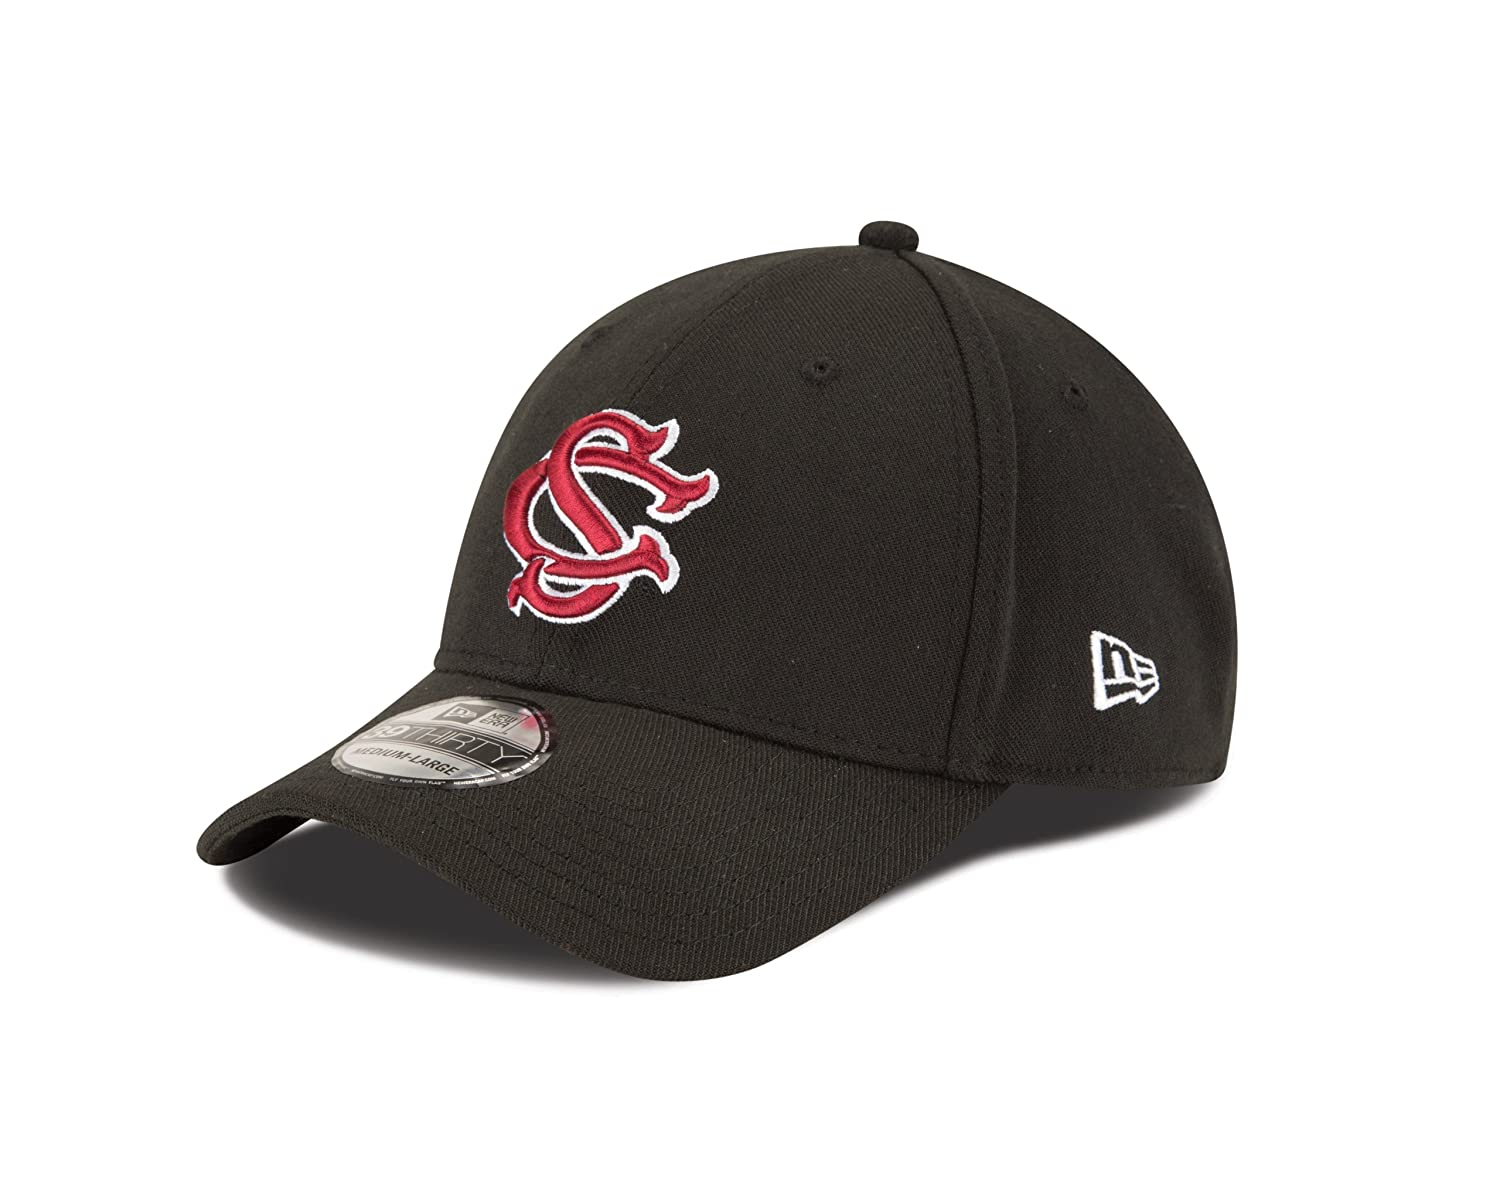 save off 81272 9c102 Amazon.com   New Era NCAA College Team Classic 39THIRTY Stretch Fit Cap    Sports   Outdoors